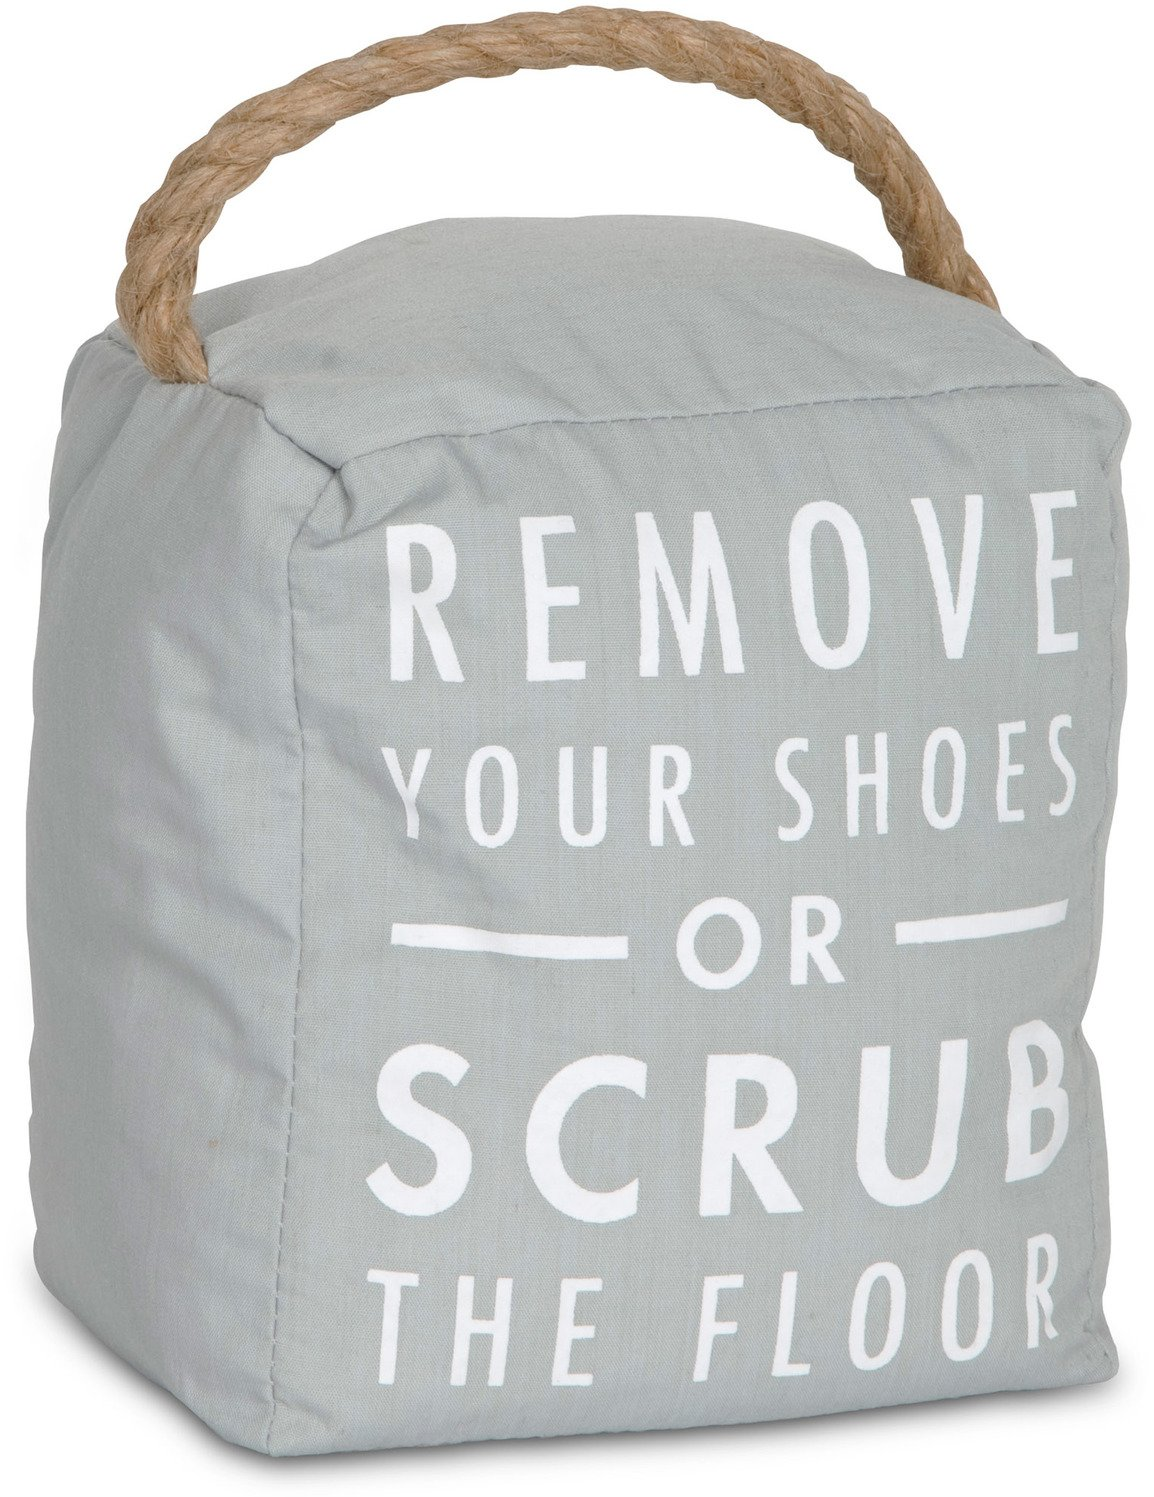 Pavilion Gift Company 72195 Remove Your Shoes Door Stopper, 5 x 6''